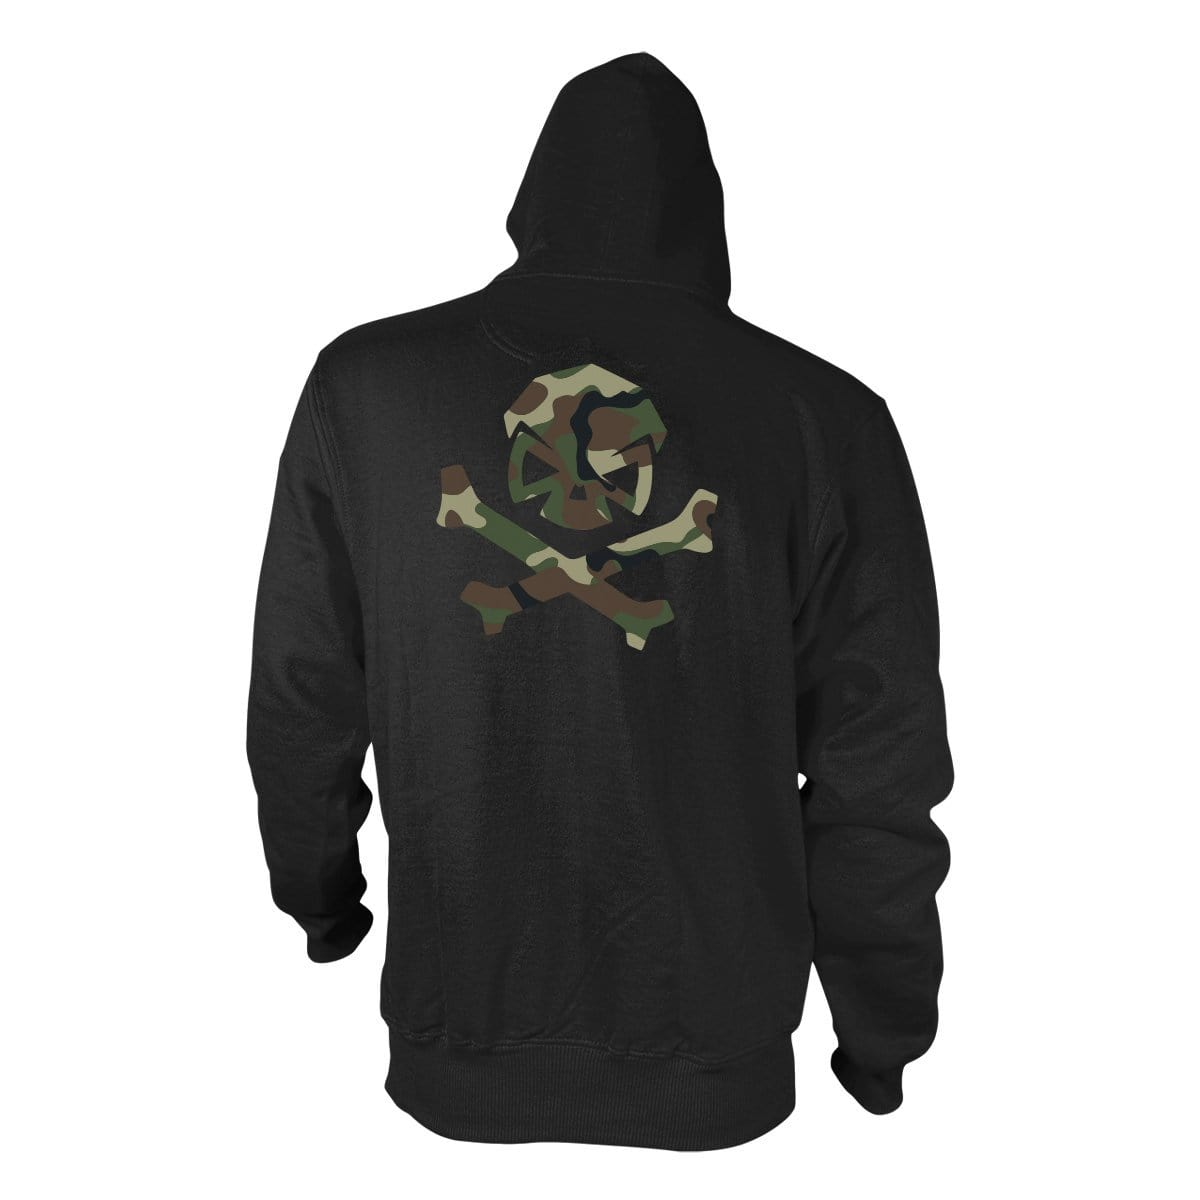 Woodland Camo Logo Hoodie - Black/Green_Woodland - Hoodies - Pipe Hitters Union